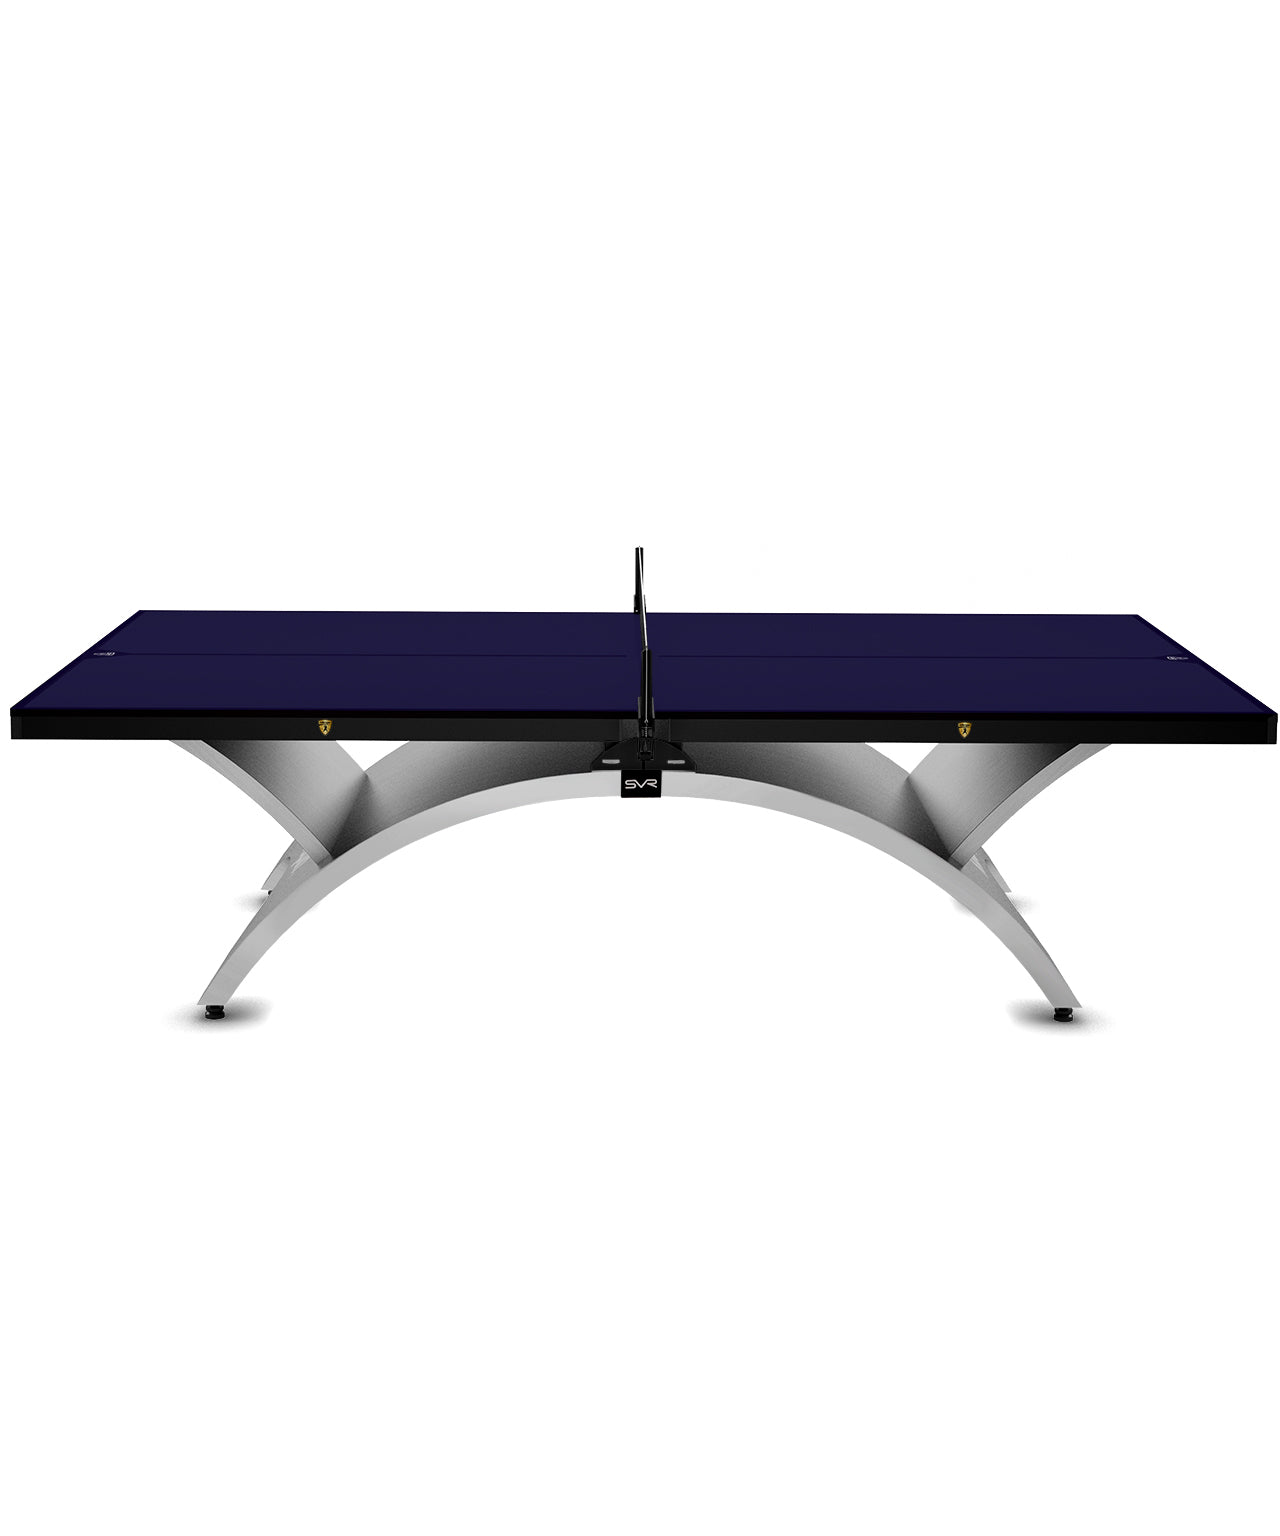 Killerspin Ping Pong Table  Revolution SVR Platinum Blu Arch